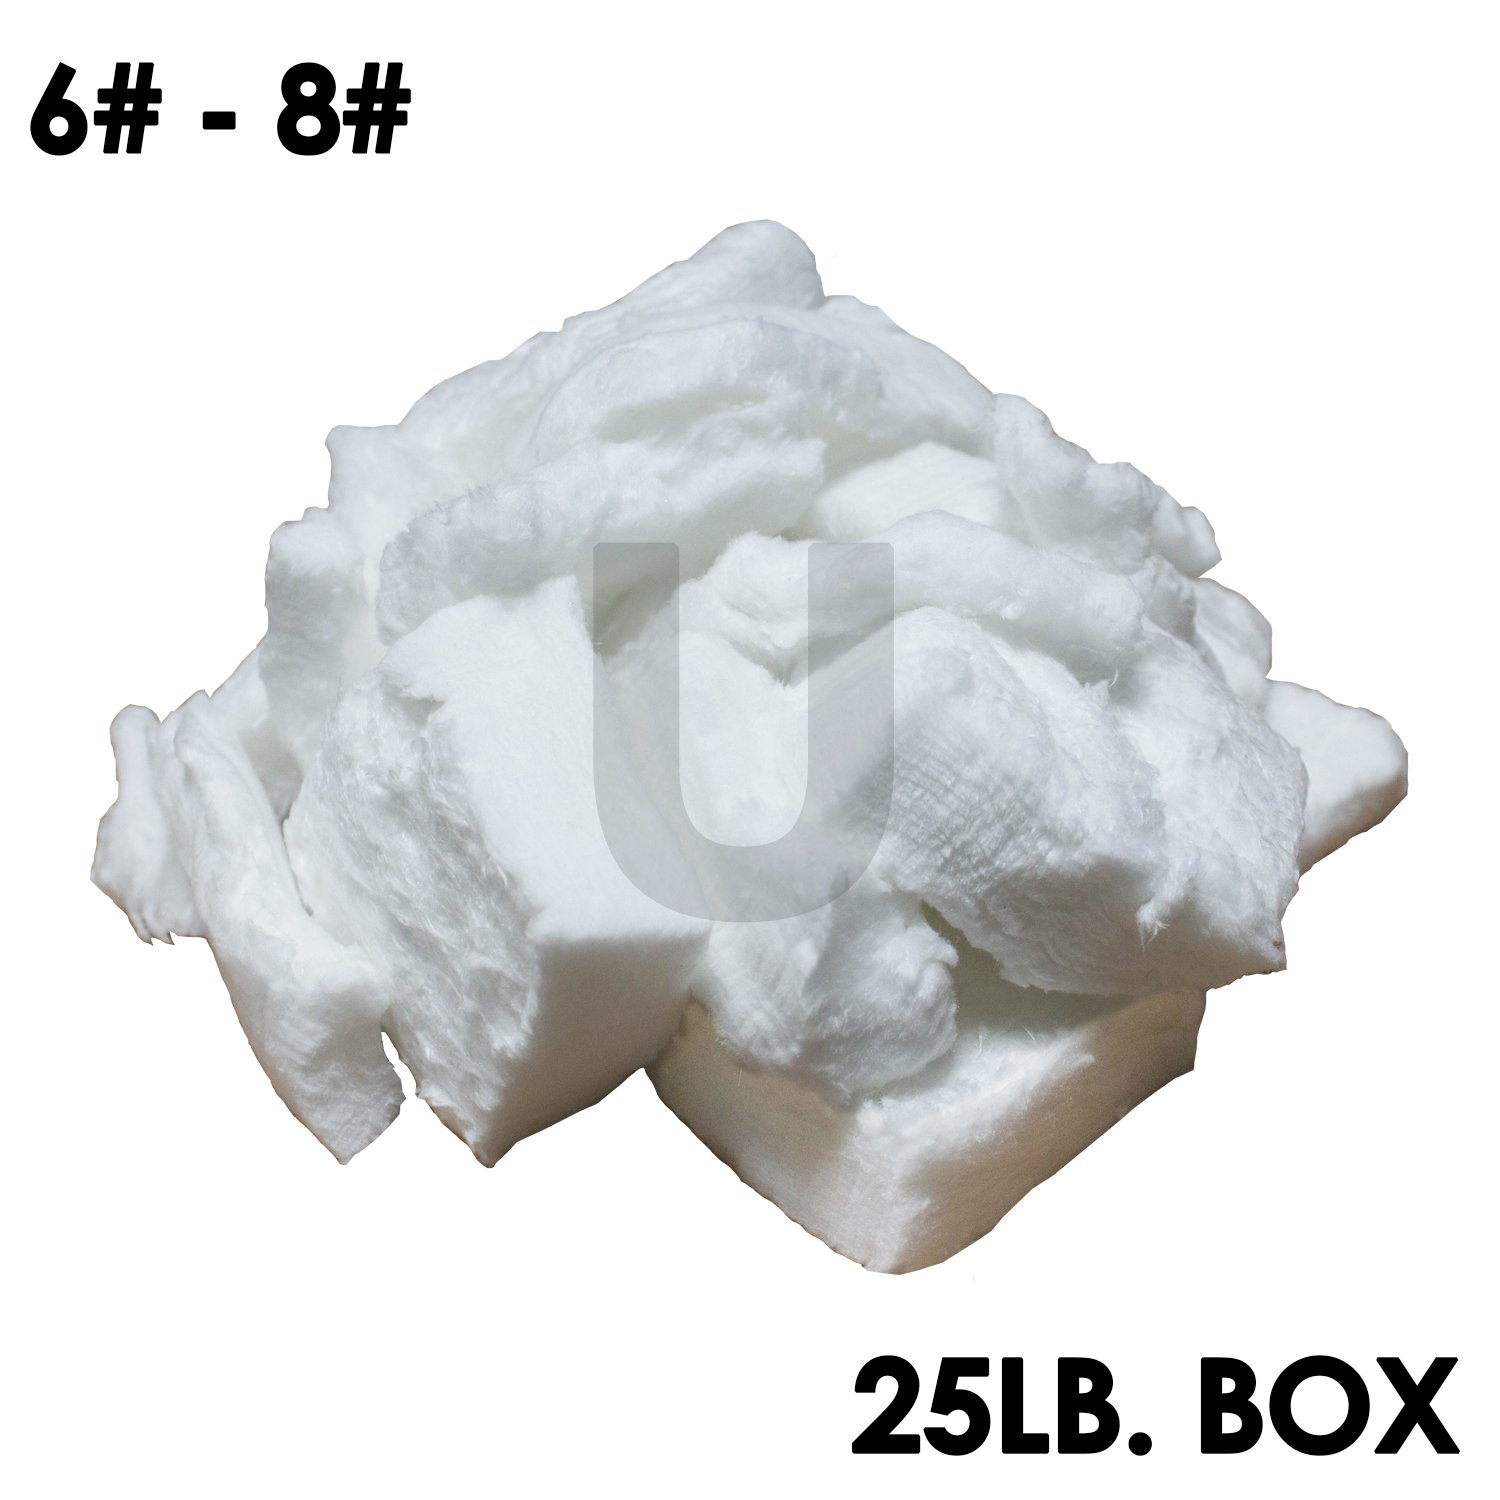 UniTherm Ceramic Bulk Fiber (25 lbs. Per Box) (6-8# Densities, 2300°F) for Vacuum Forming of Rigid Boards & Shapes, Reinforcement of Cast Ceramics, Bulk Fill Material or Insulation and More!